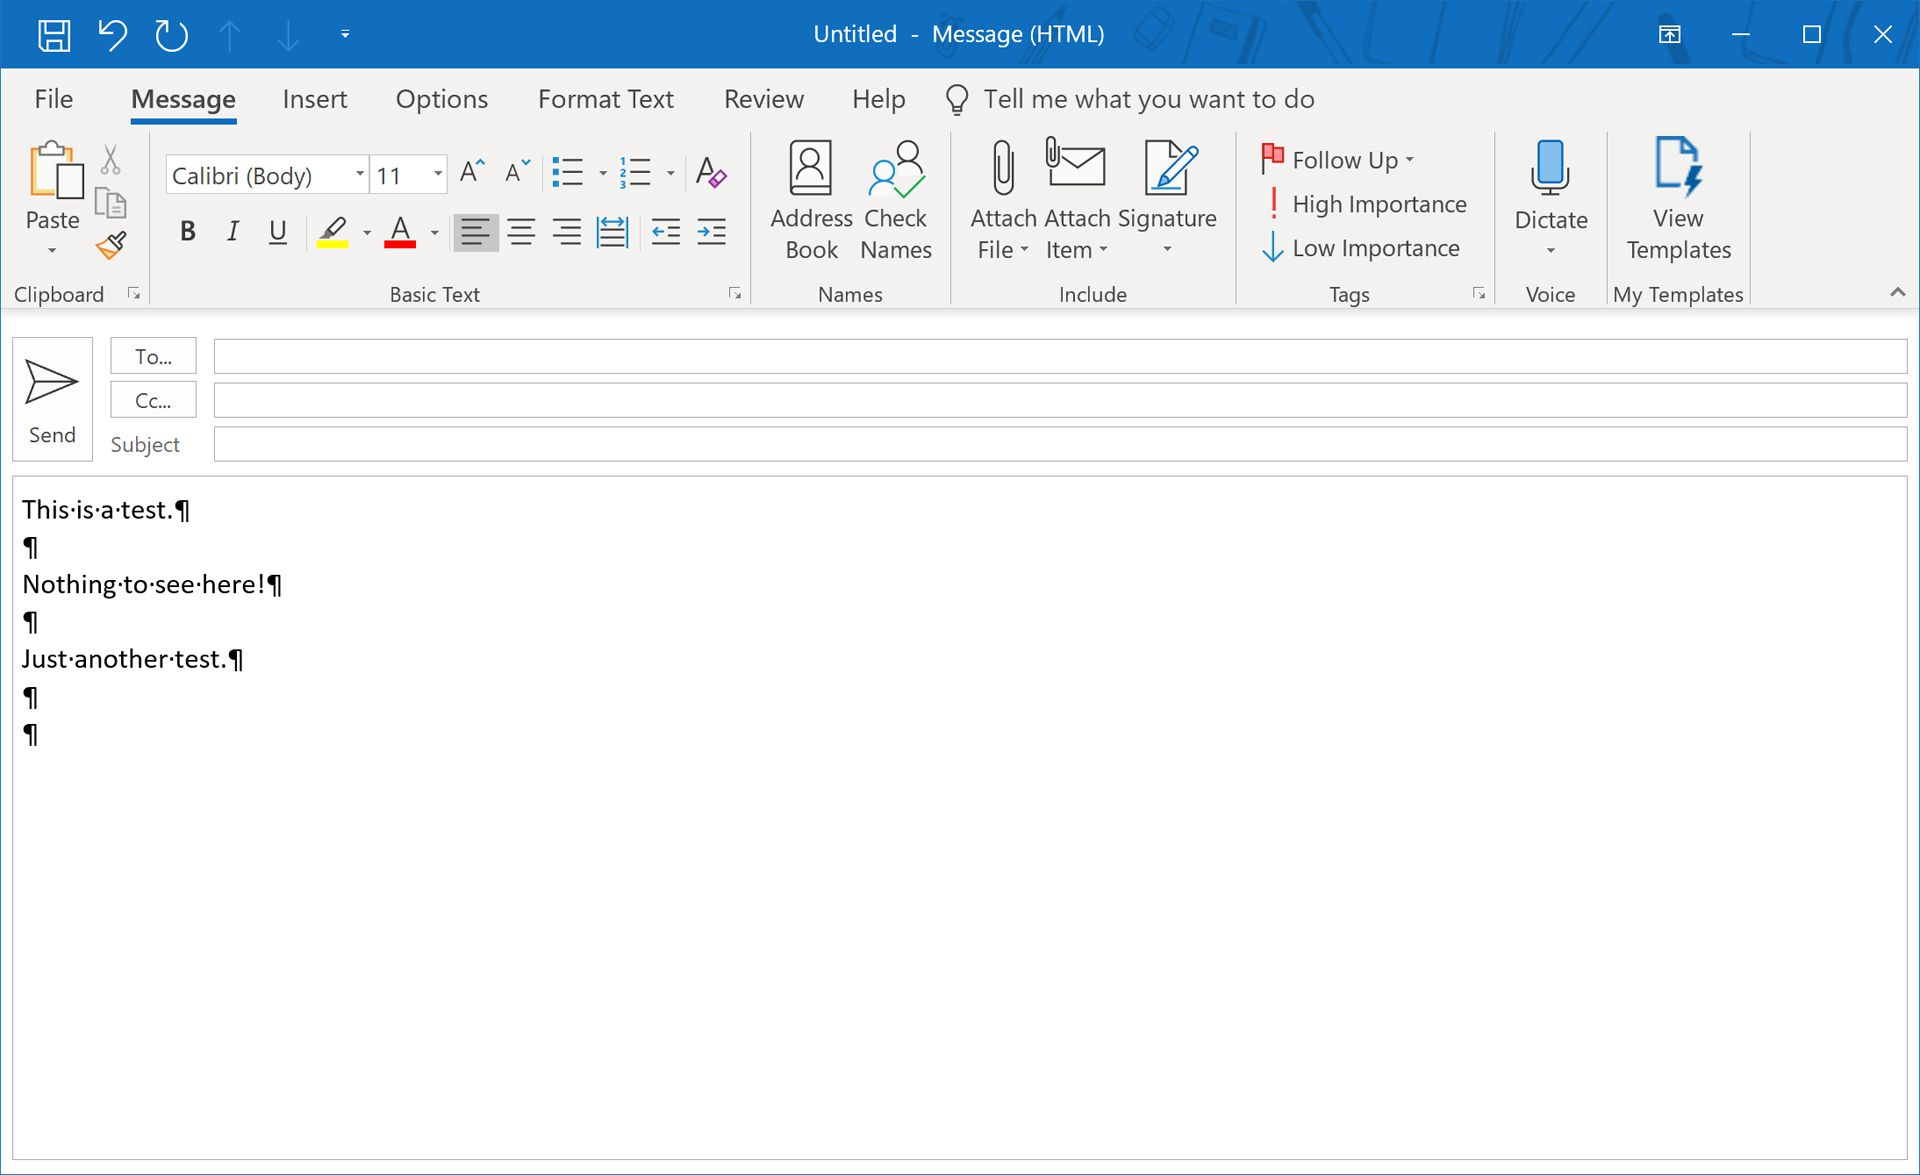 How to Remove Paragraph Symbols in Outlook